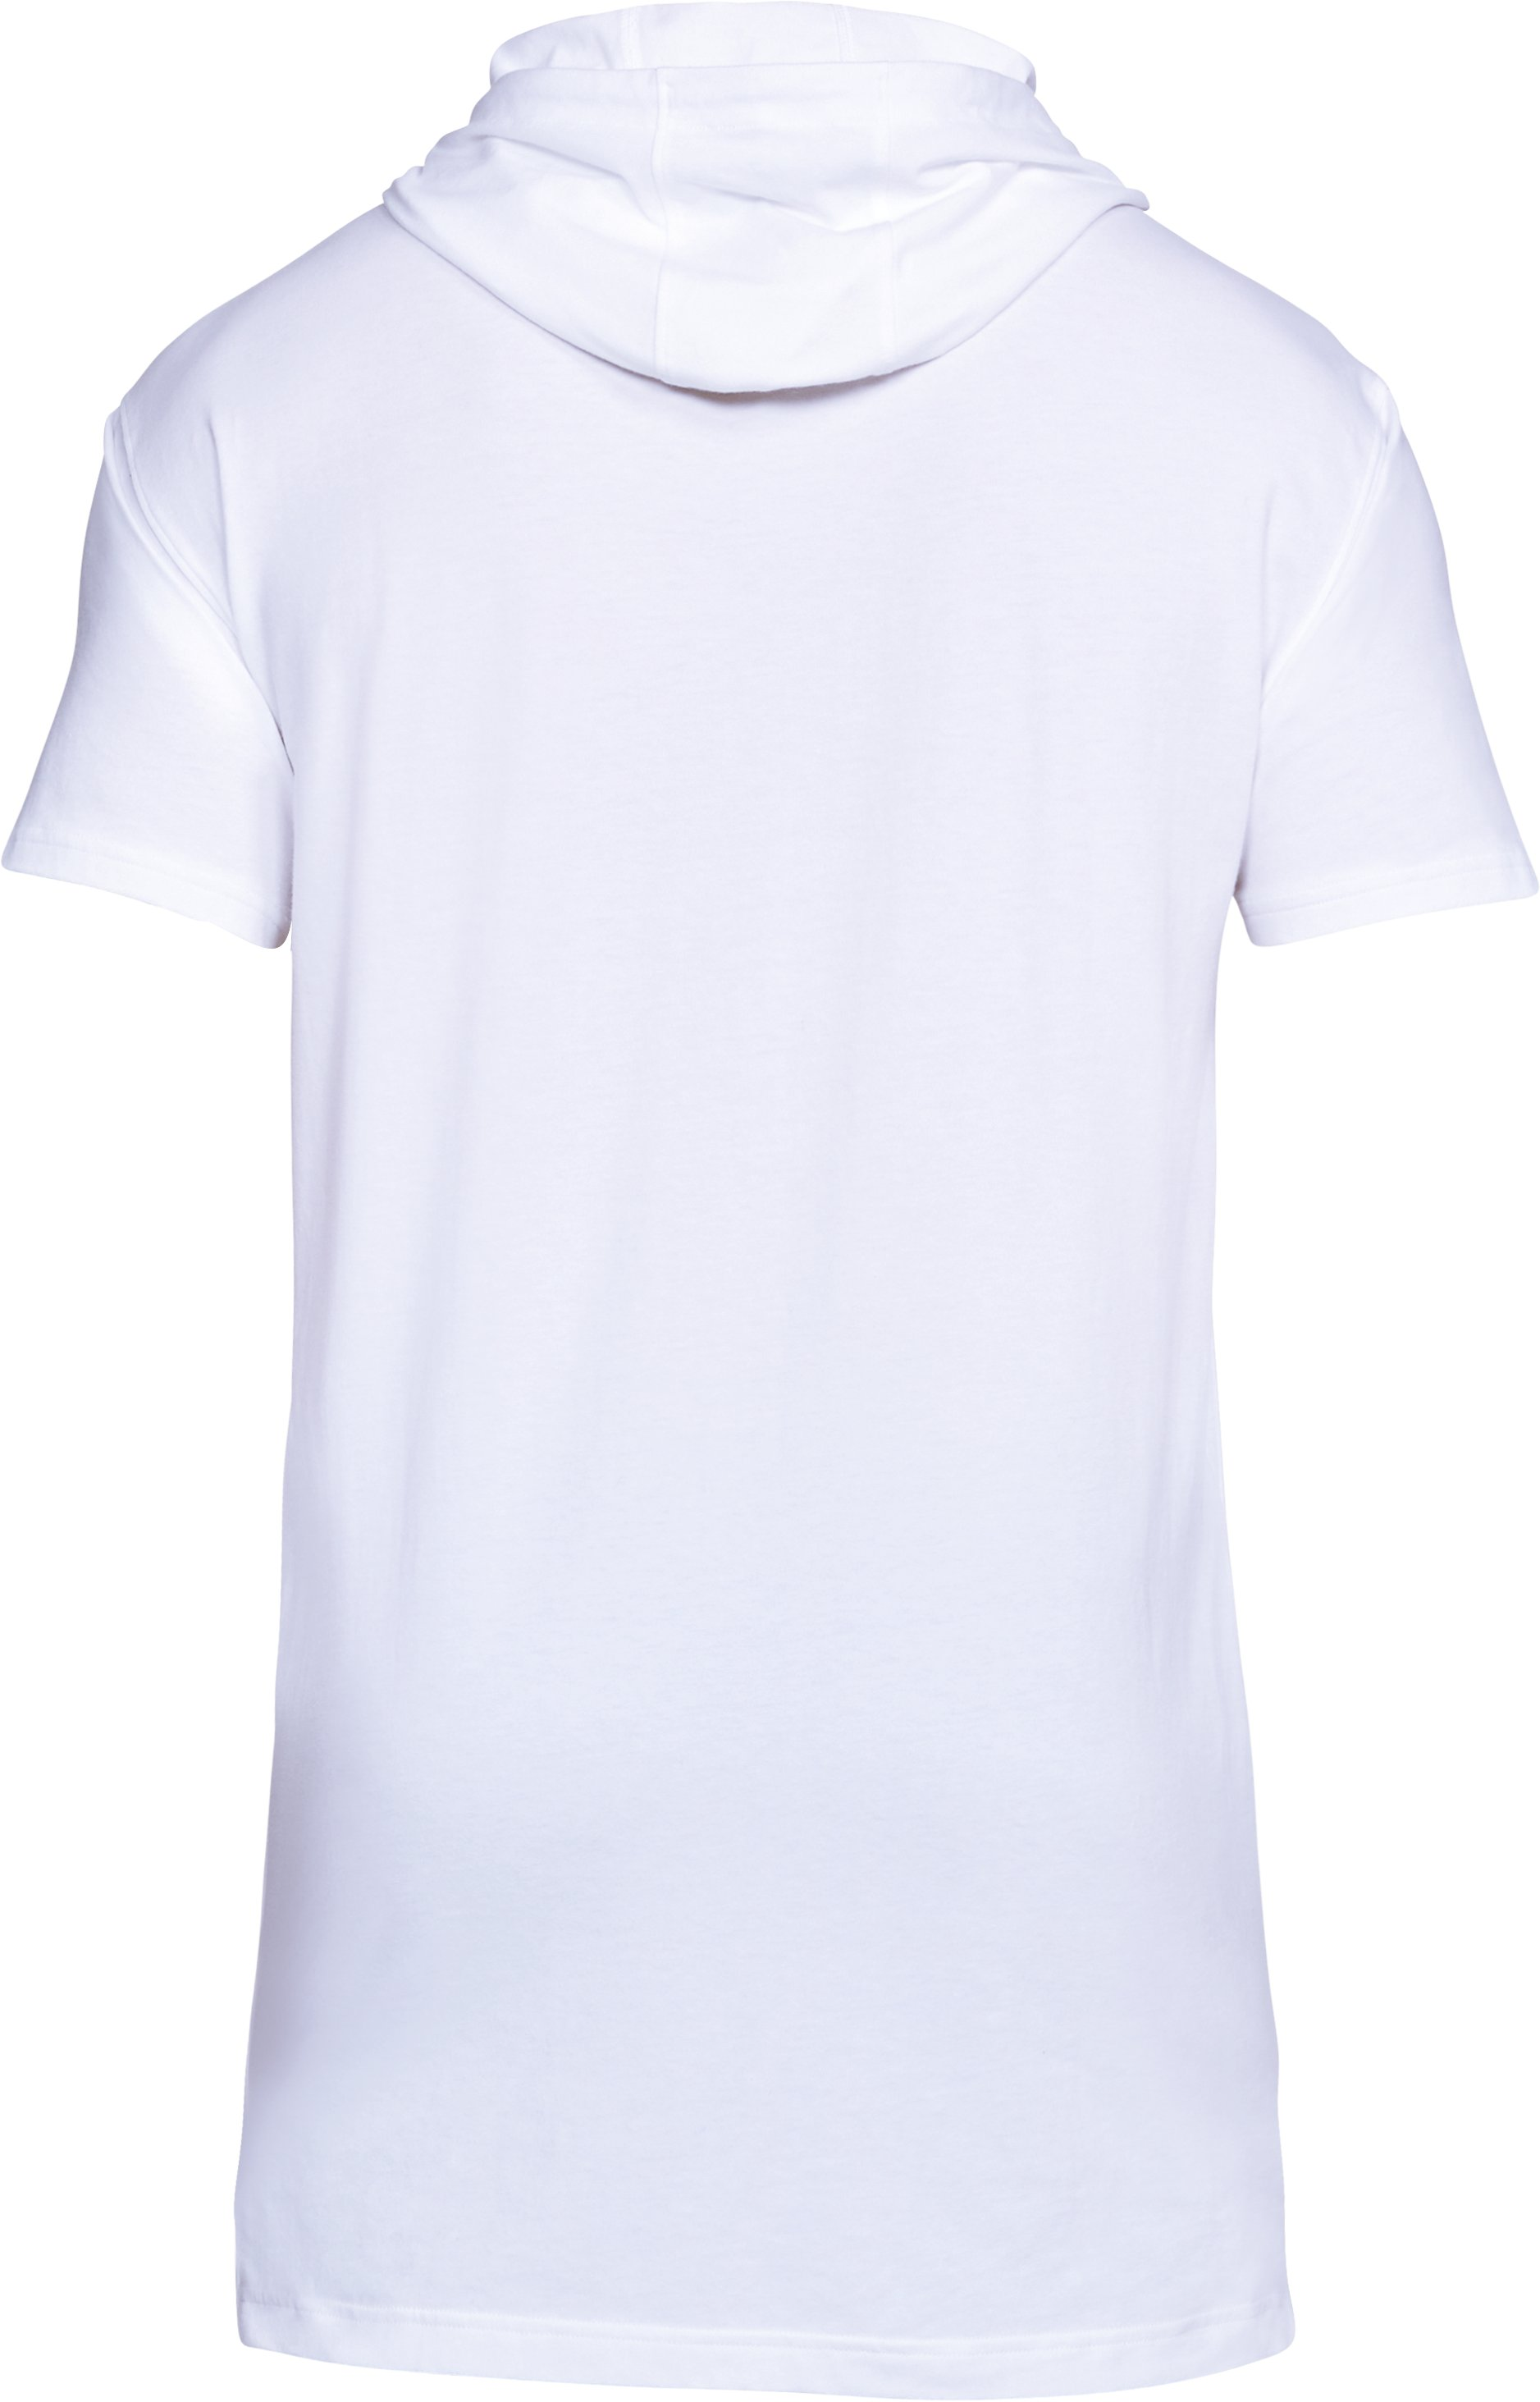 Men's SC30 Short Sleeve Hooded T-Shirt, White,